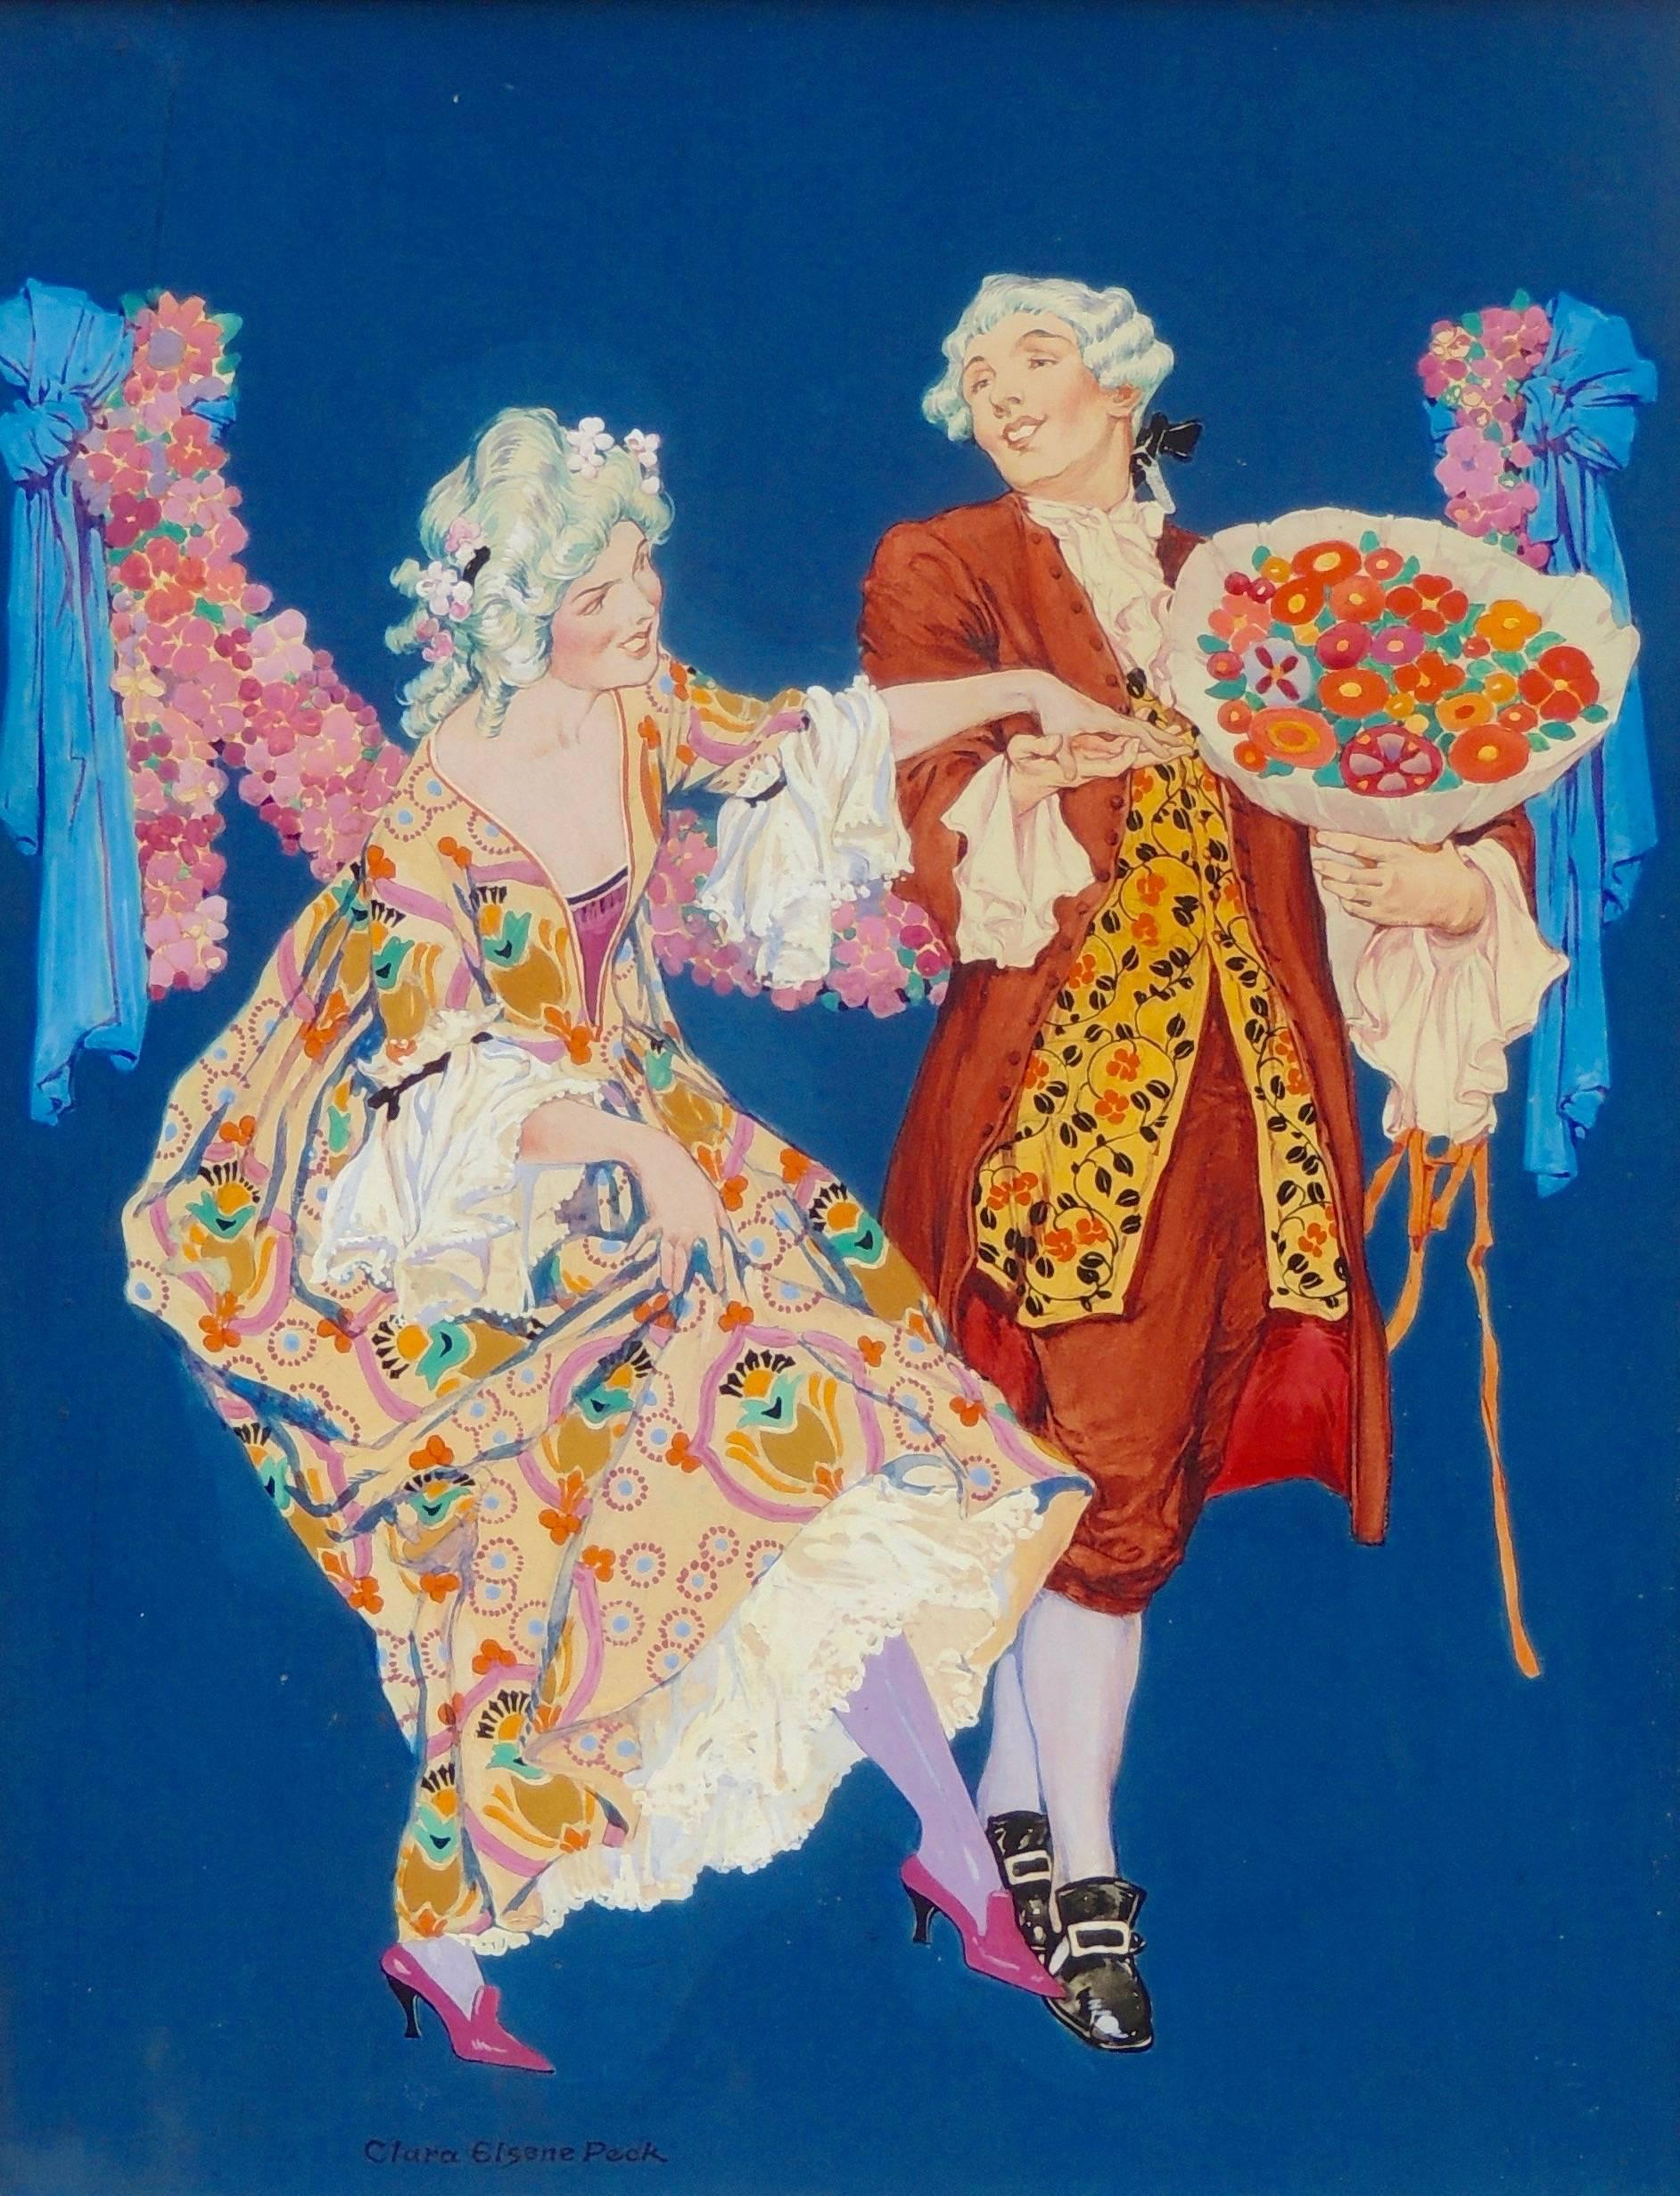 Dancing Couple at the Ball, Theatre Magazine Cover